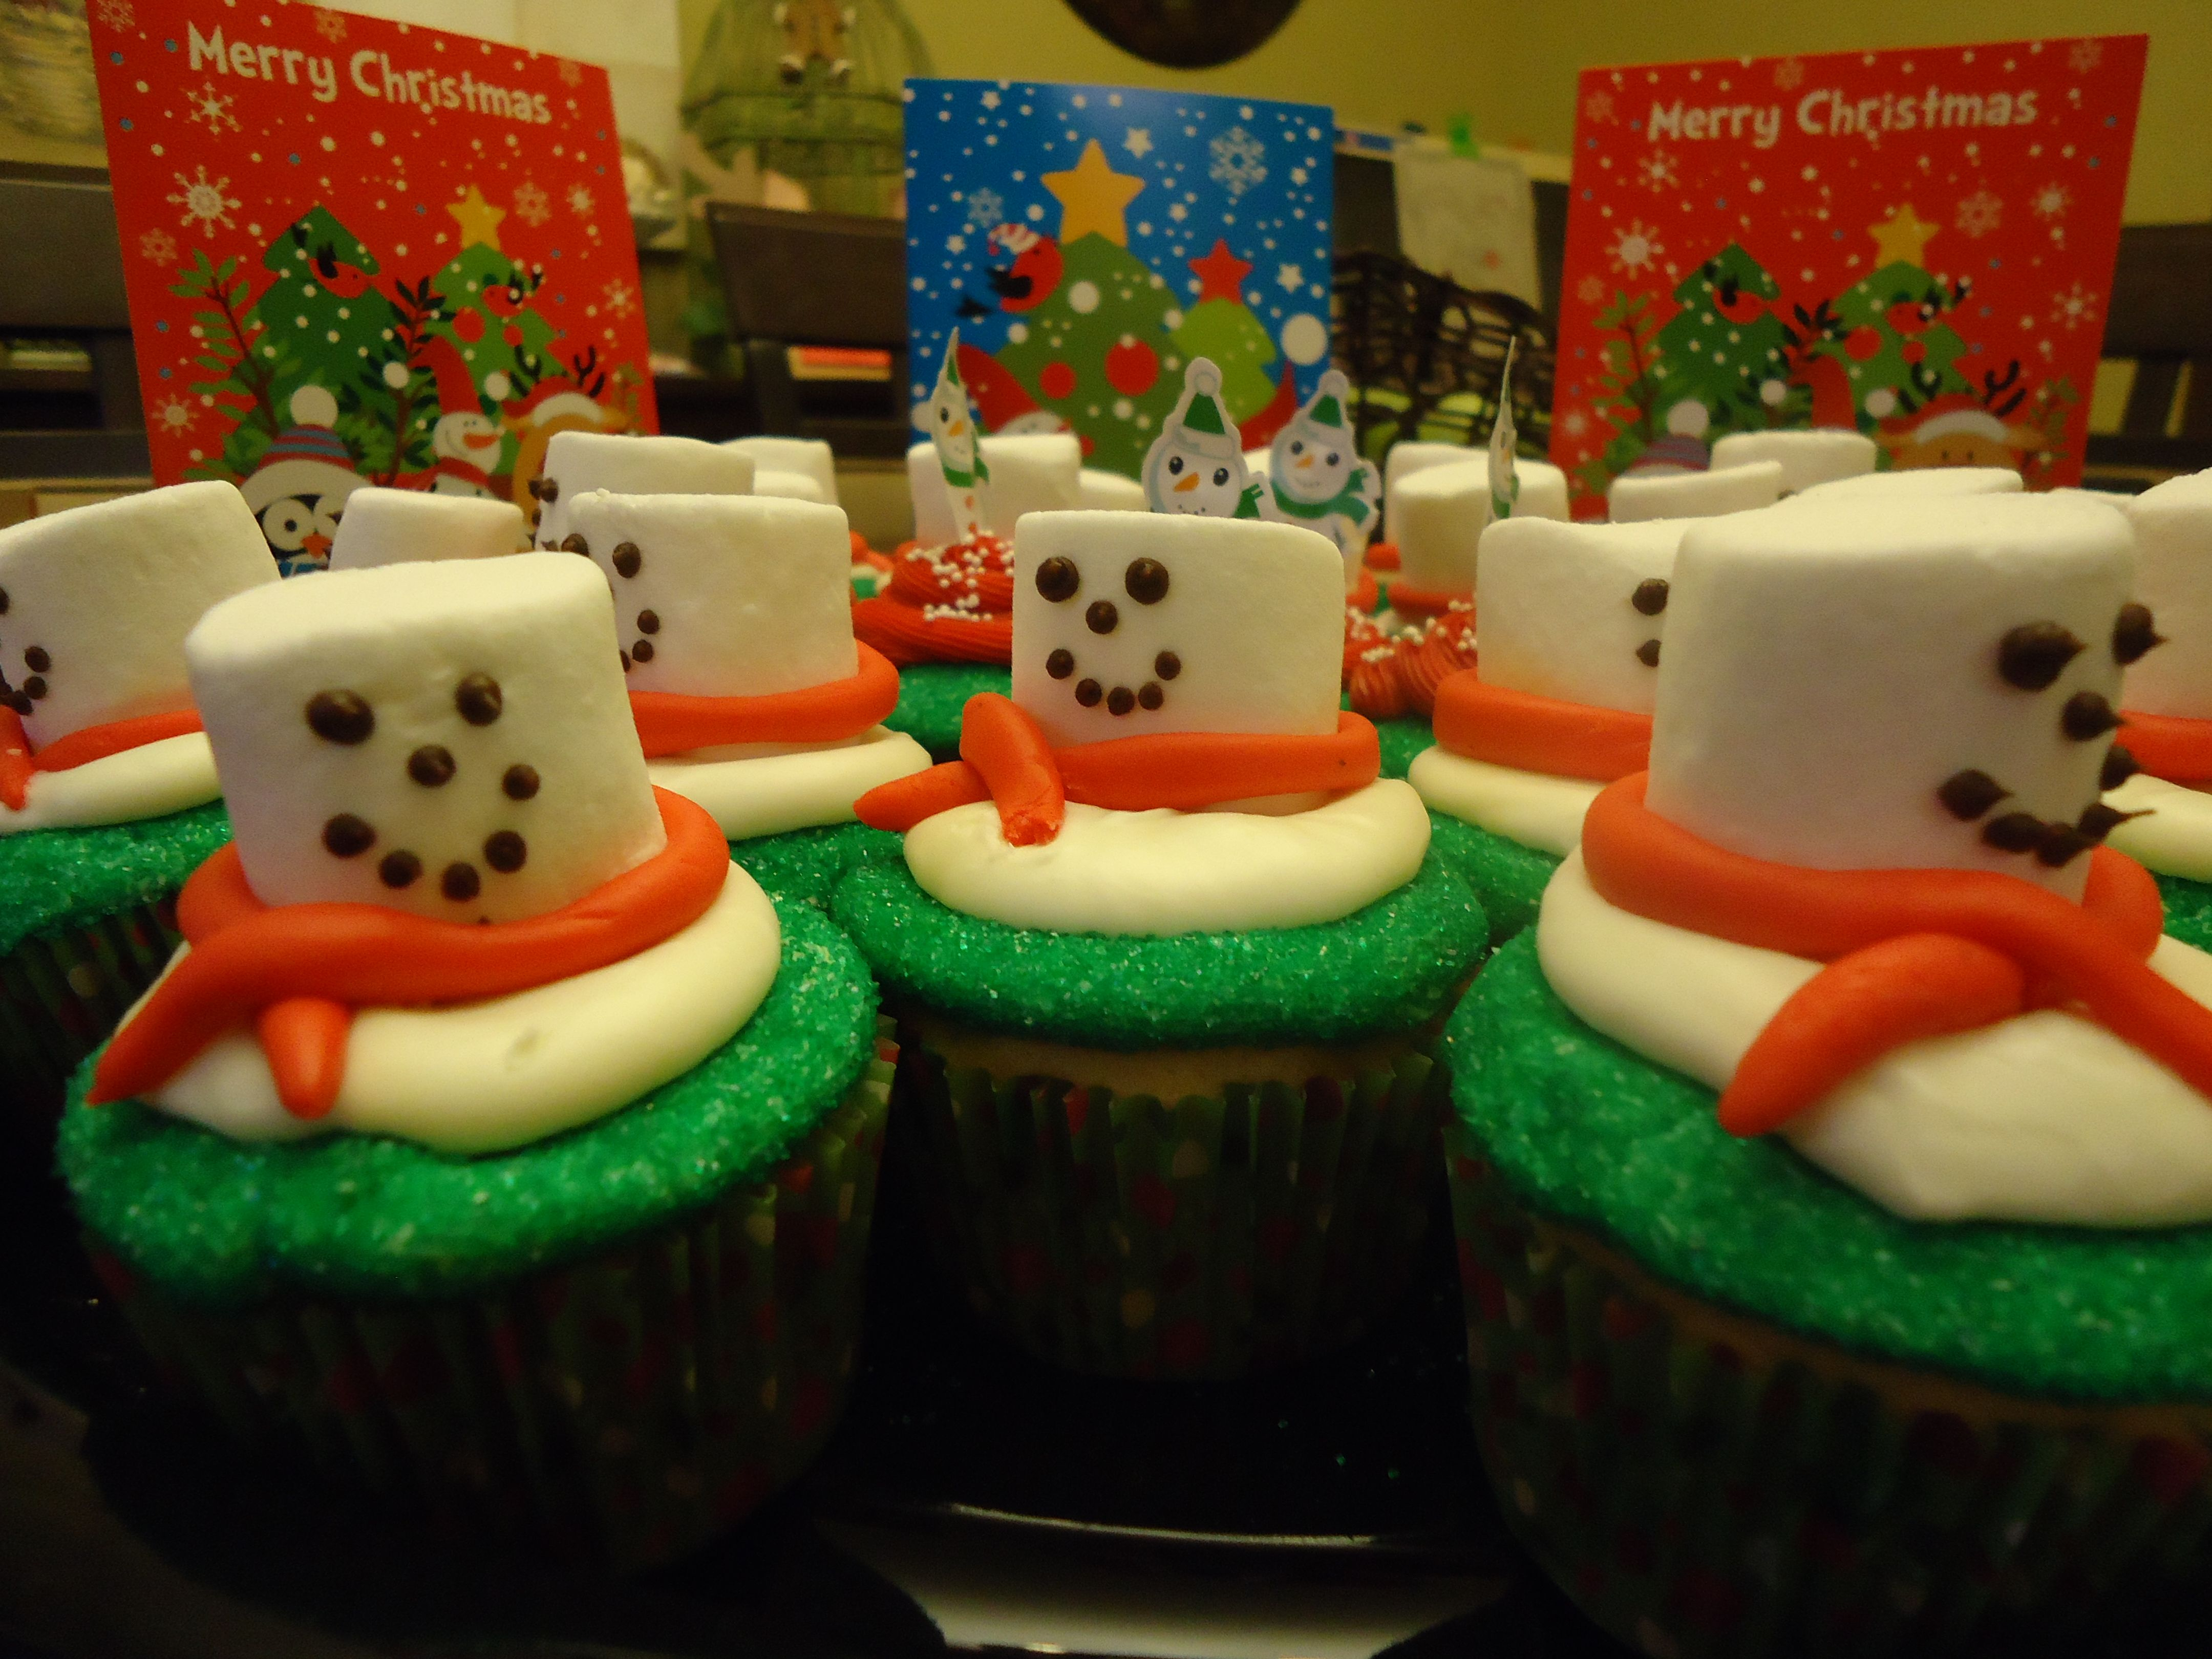 Melting snowman cupcakes - cupcakes I made for my daughter's preschool Christmas party